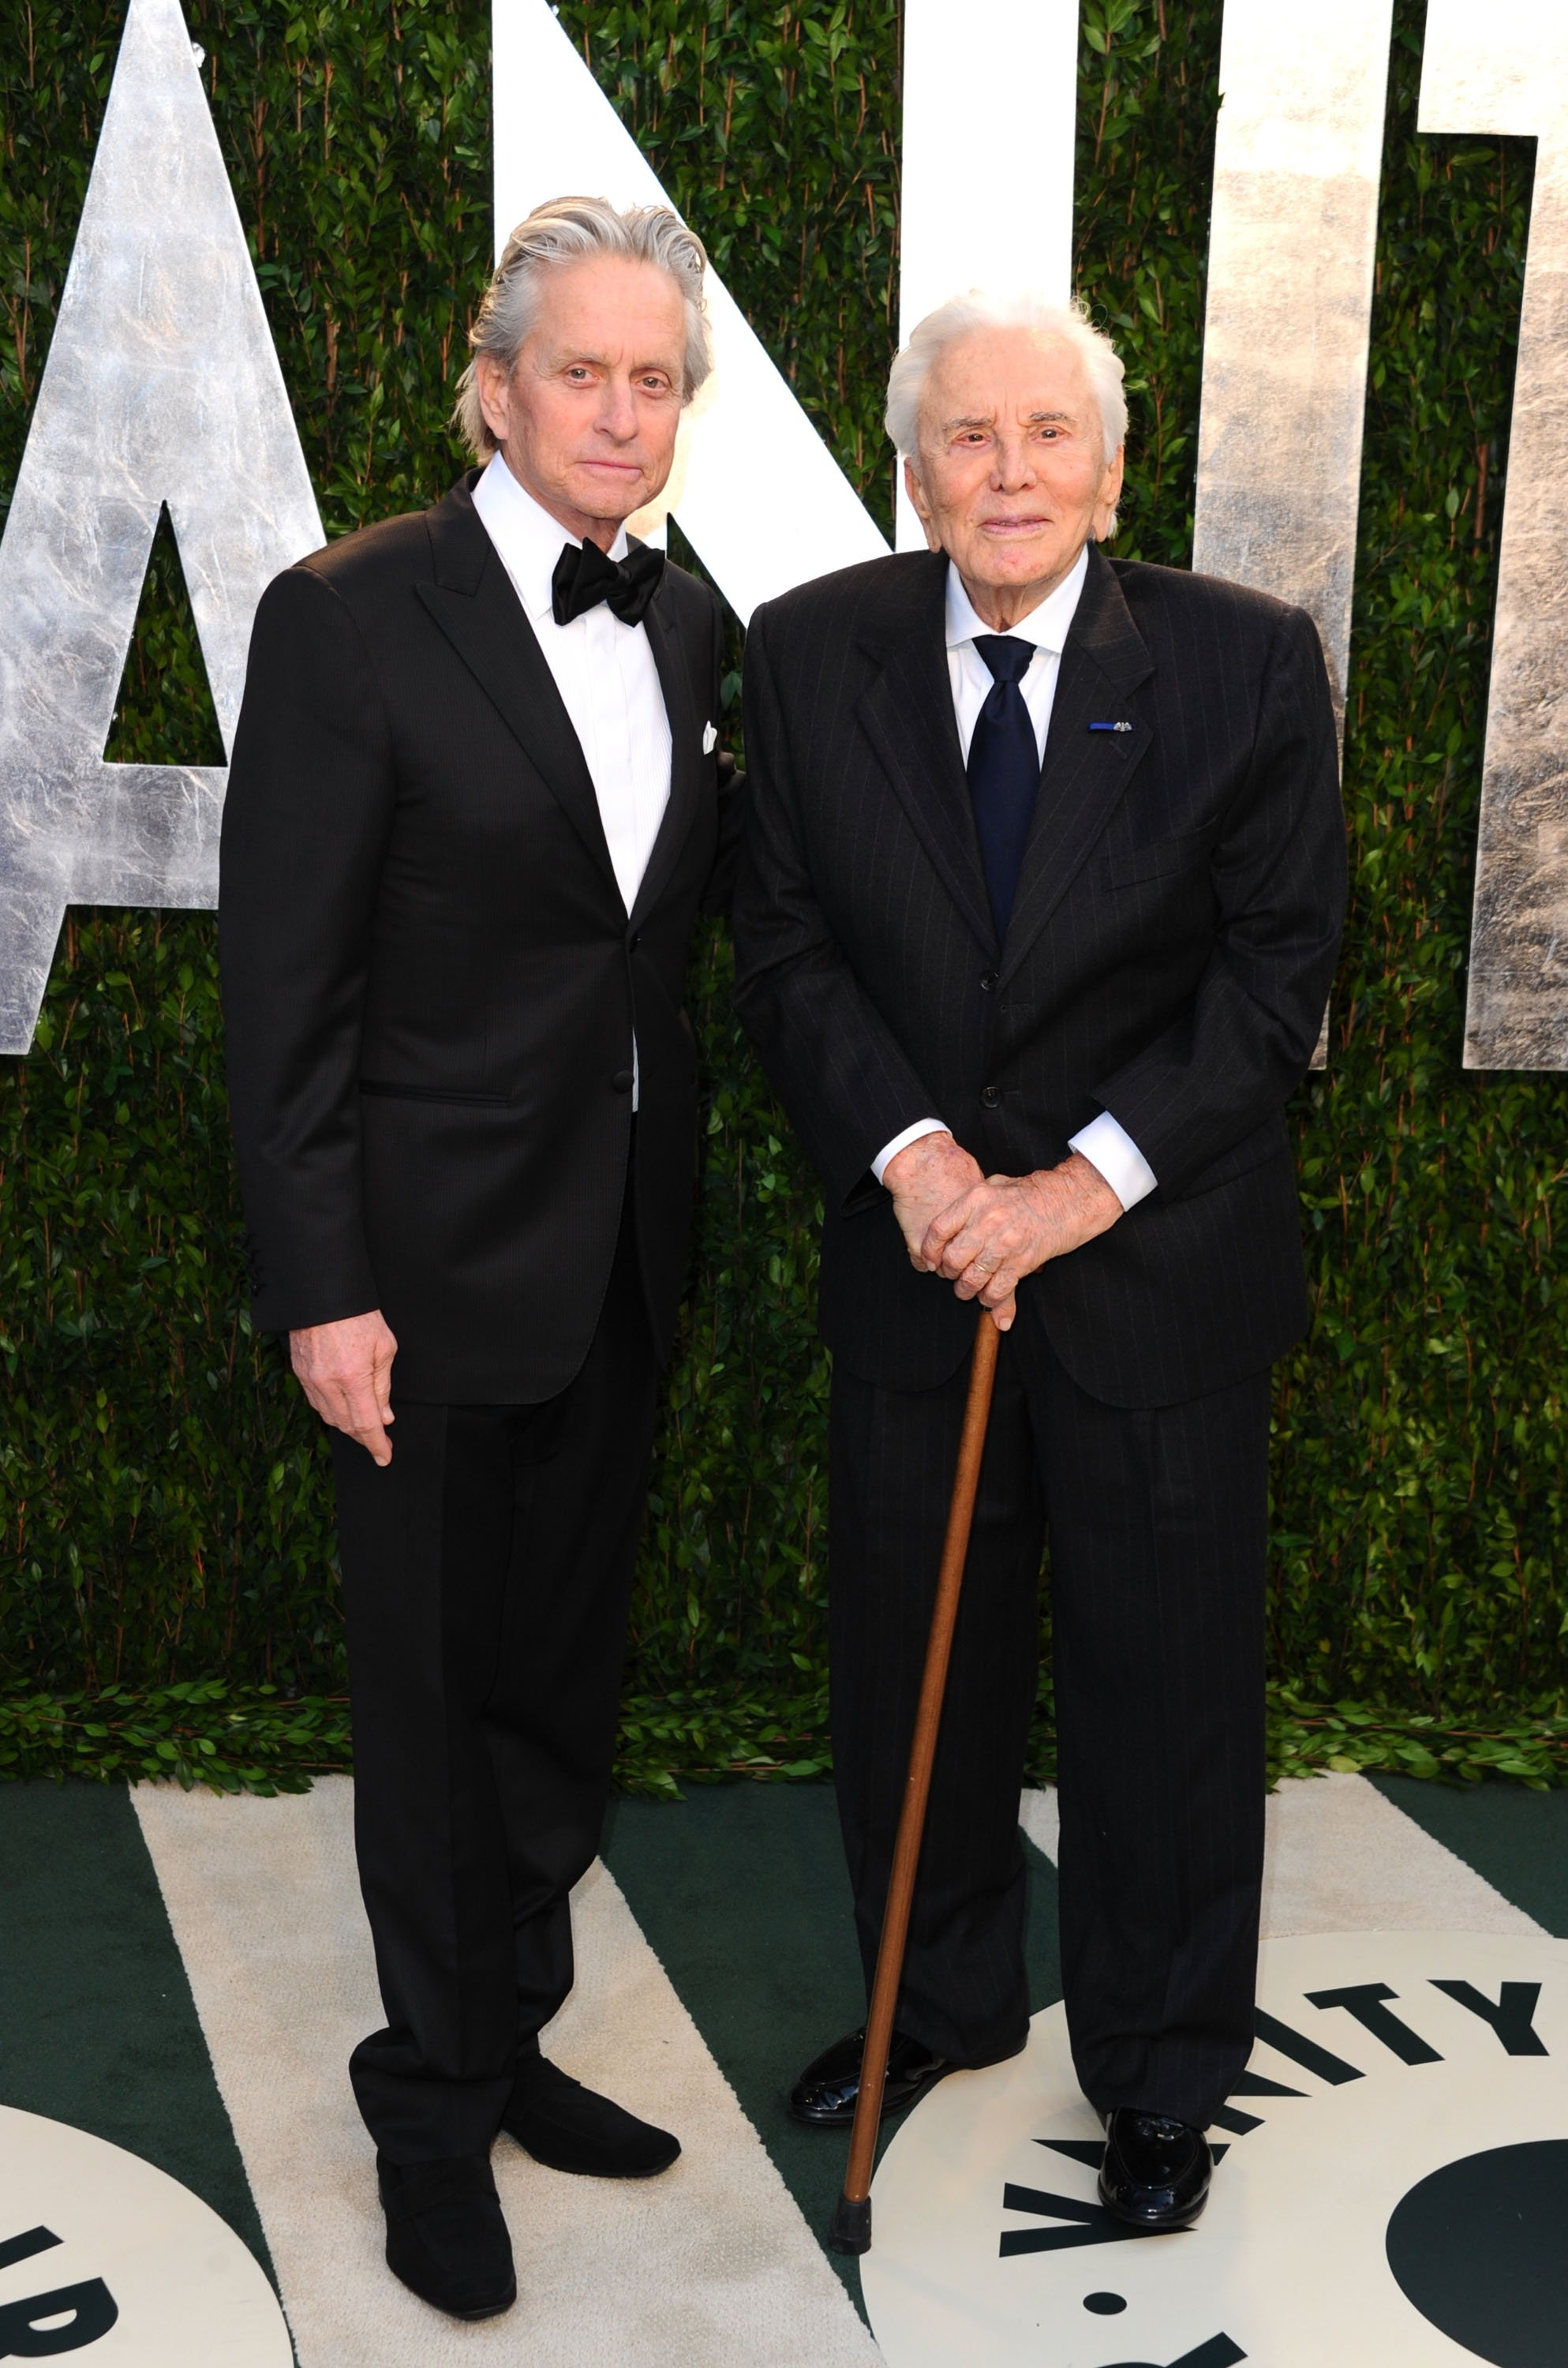 Michael Douglas and Kirk Douglas arrive at the 2012 Vanity Fair Oscar Party at Sunset Tower on February 26, 2012 in West Hollywood, California | Photo: Getty Images